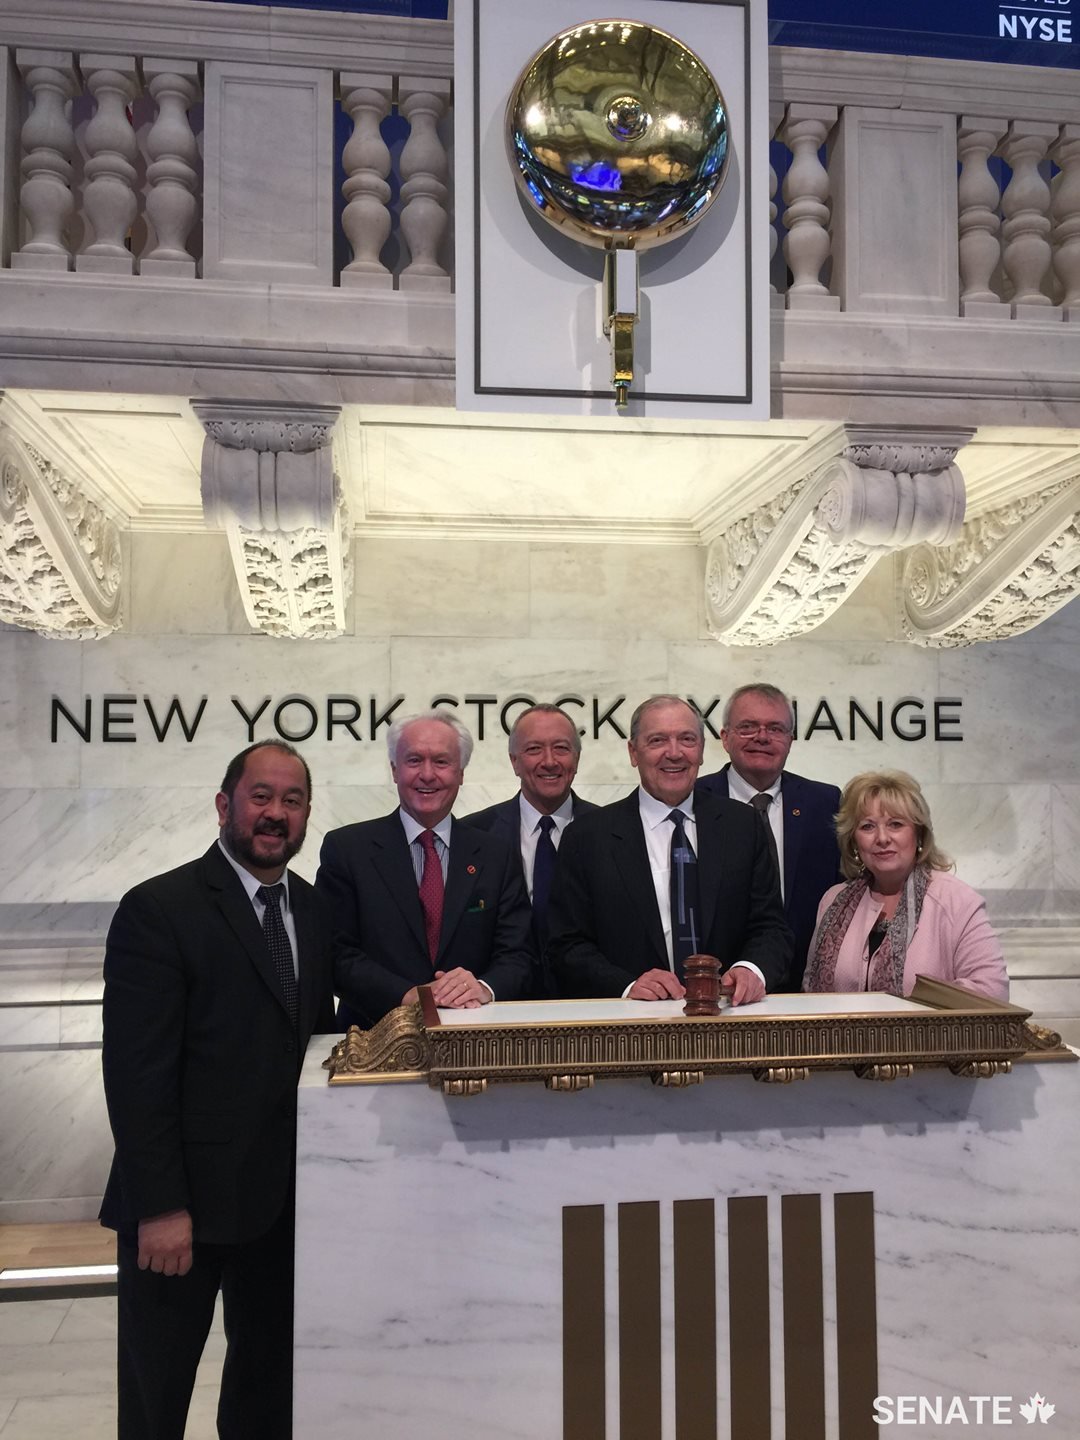 Committee members visit the New York Stock Exchange during a fact-finding mission in May 2017.